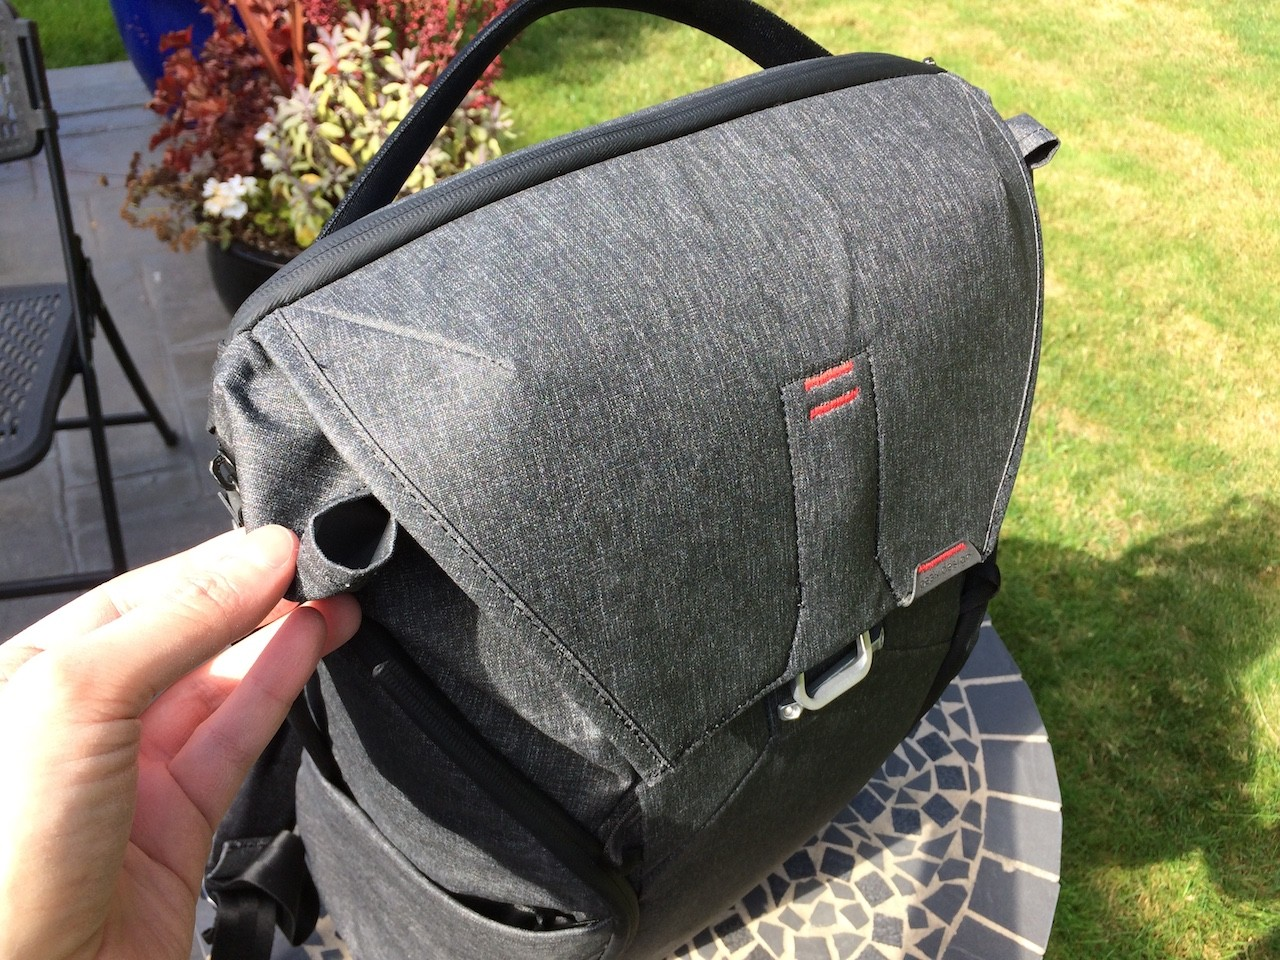 Peak Design Everyday Backpack top compartment flap problem